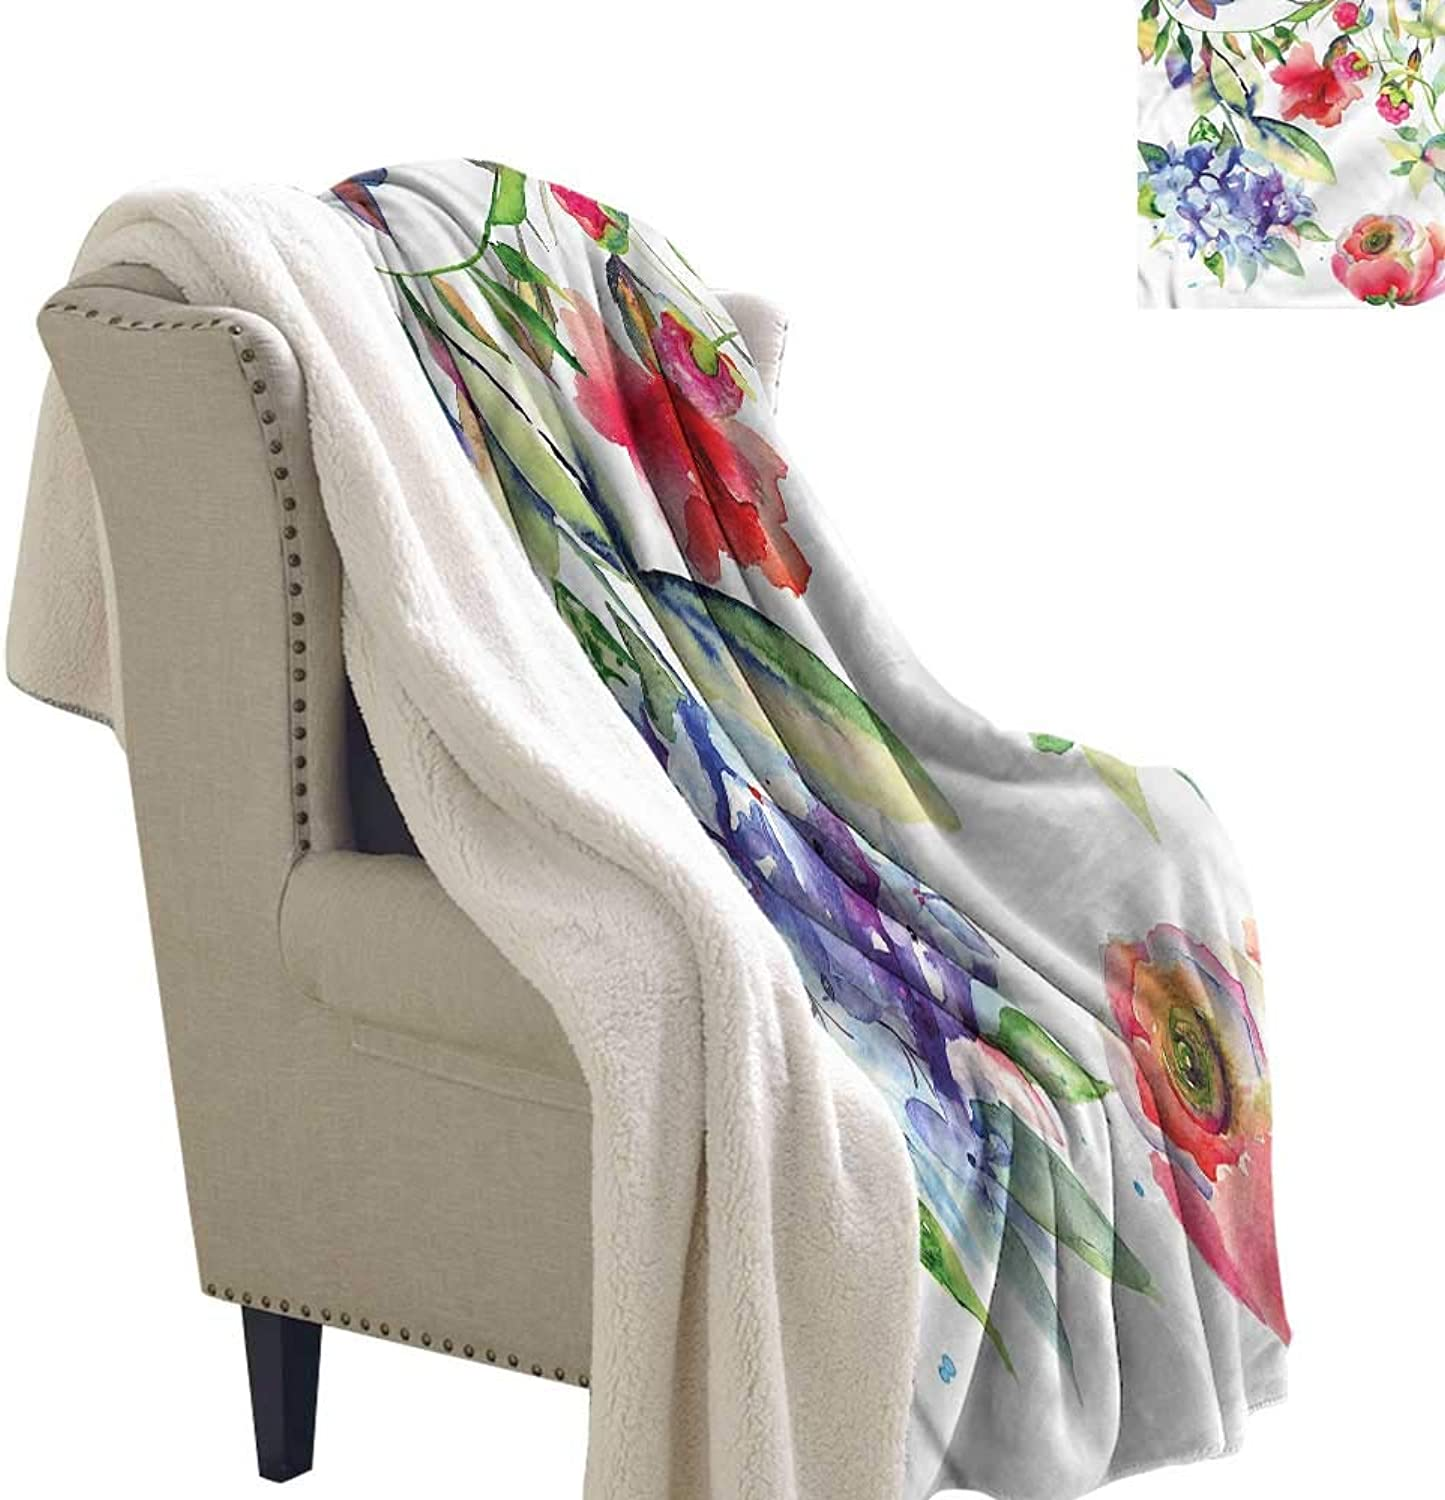 Beihai1Sun Art Berber Fleece Blanket Summer Flowers Branch Warm Breathable Comforter for Girls Kids Adults 60x47 Inch